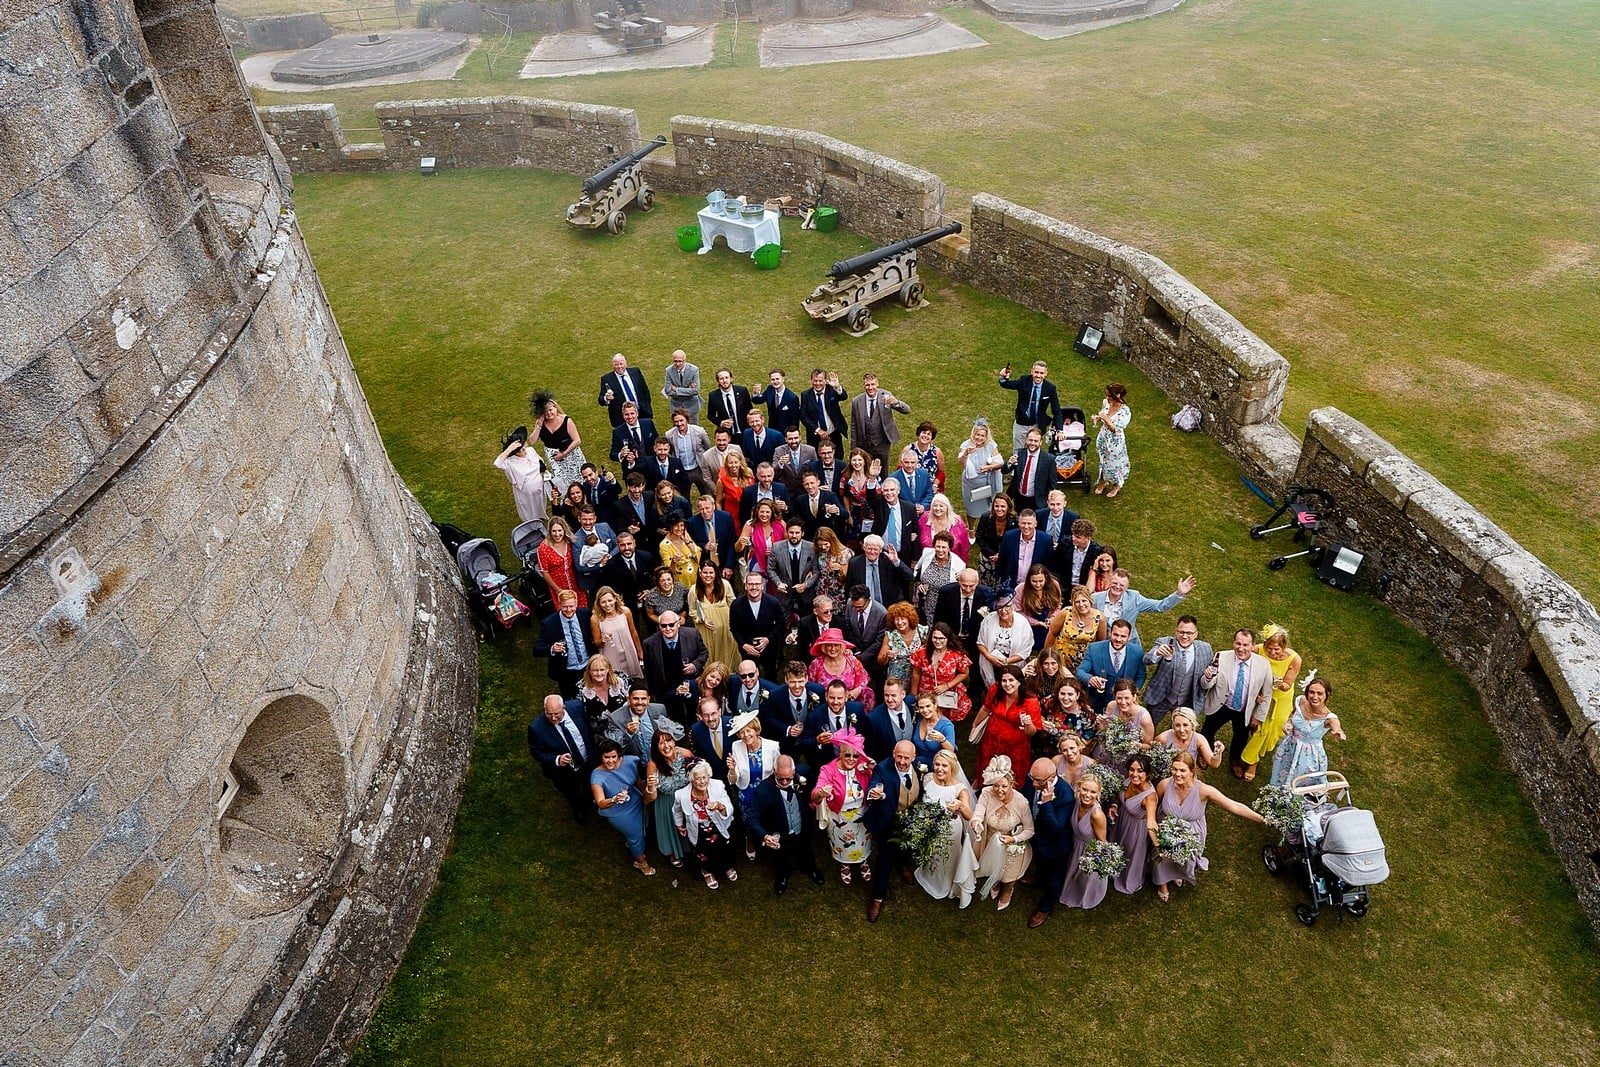 Wedding group photograph at Pendennis Castle